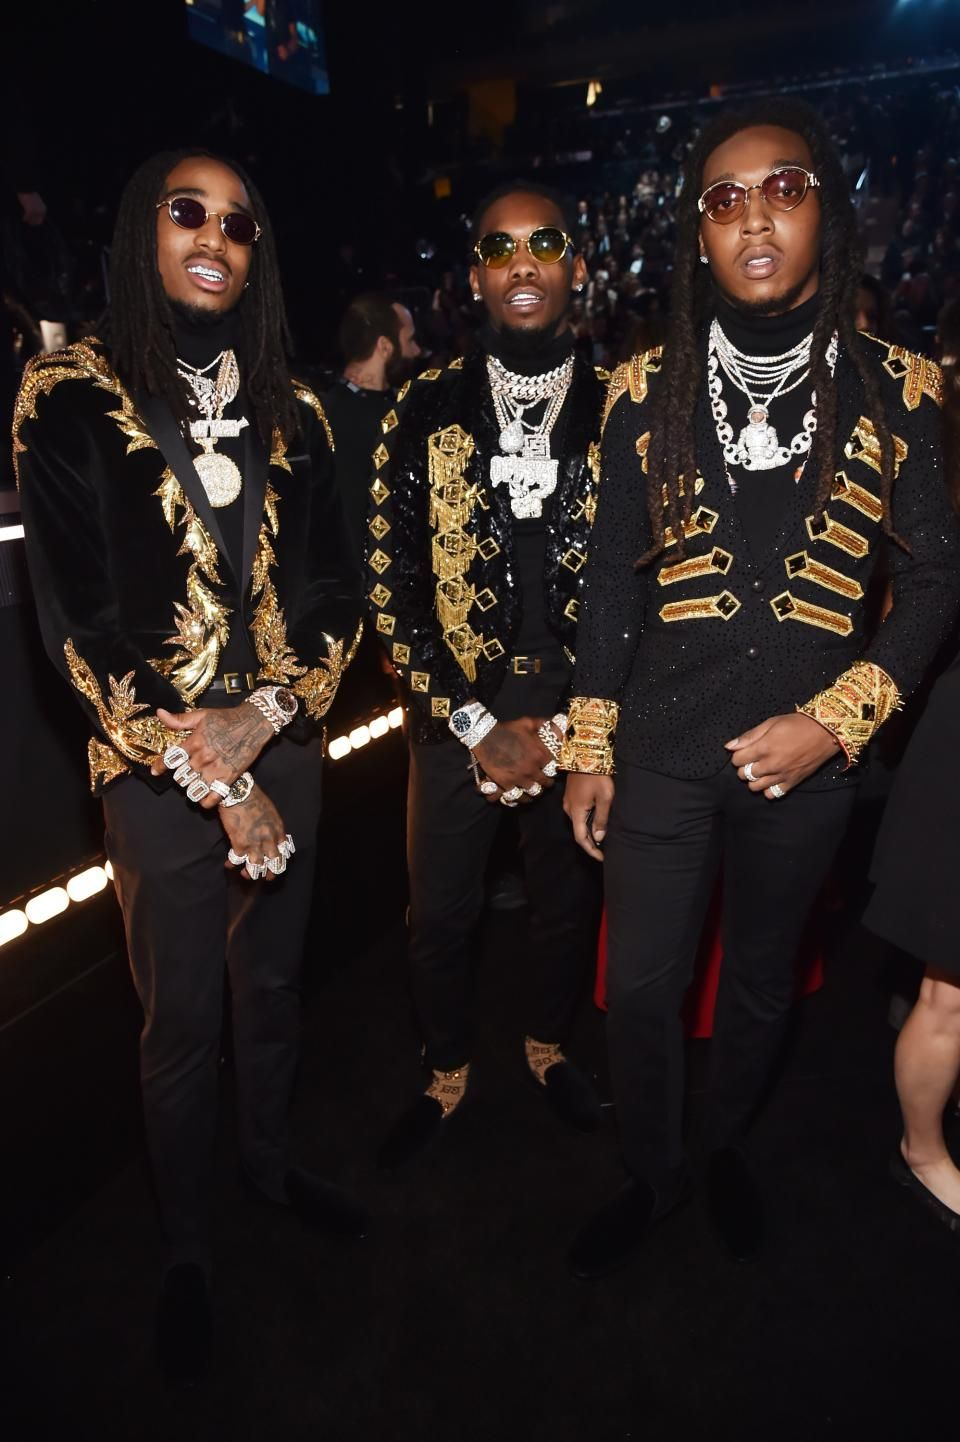 822f62478dcb Migos wearing Julien Macdonald at the 2018 Grammy Awards in NYC ...